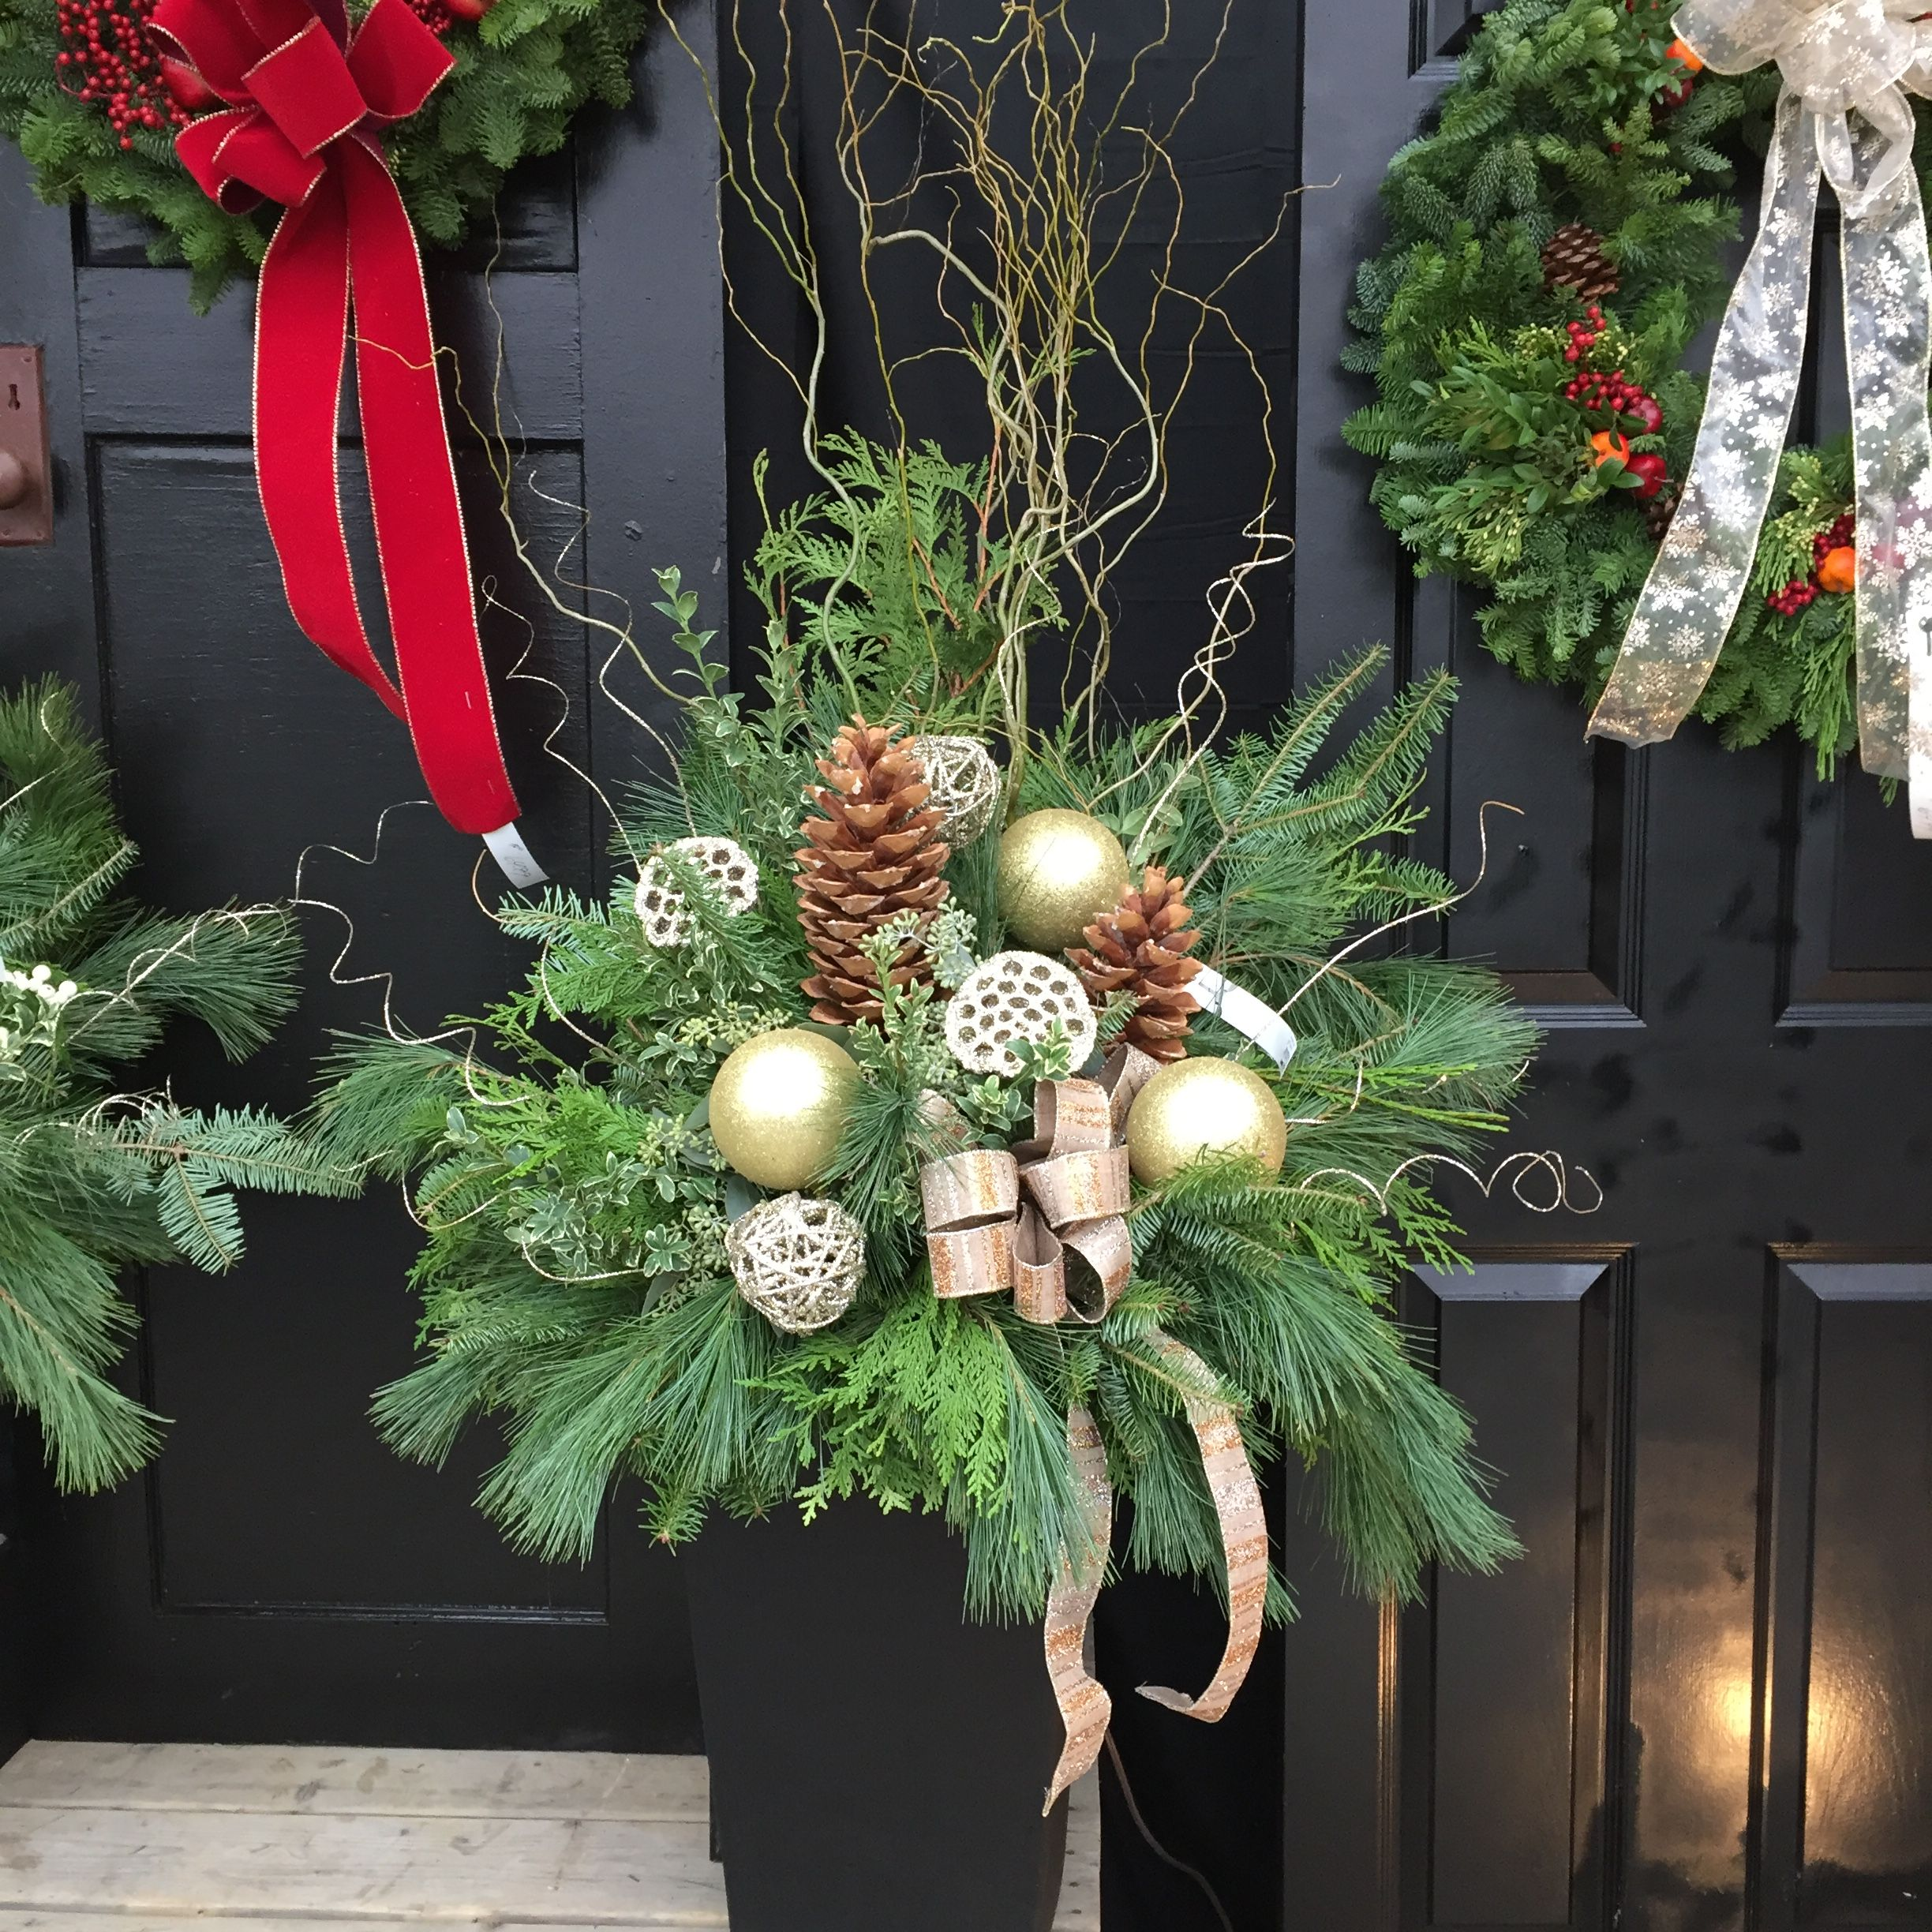 Pin by Van Belle Flowers, Gifts & Garden Centre on Christmas ...